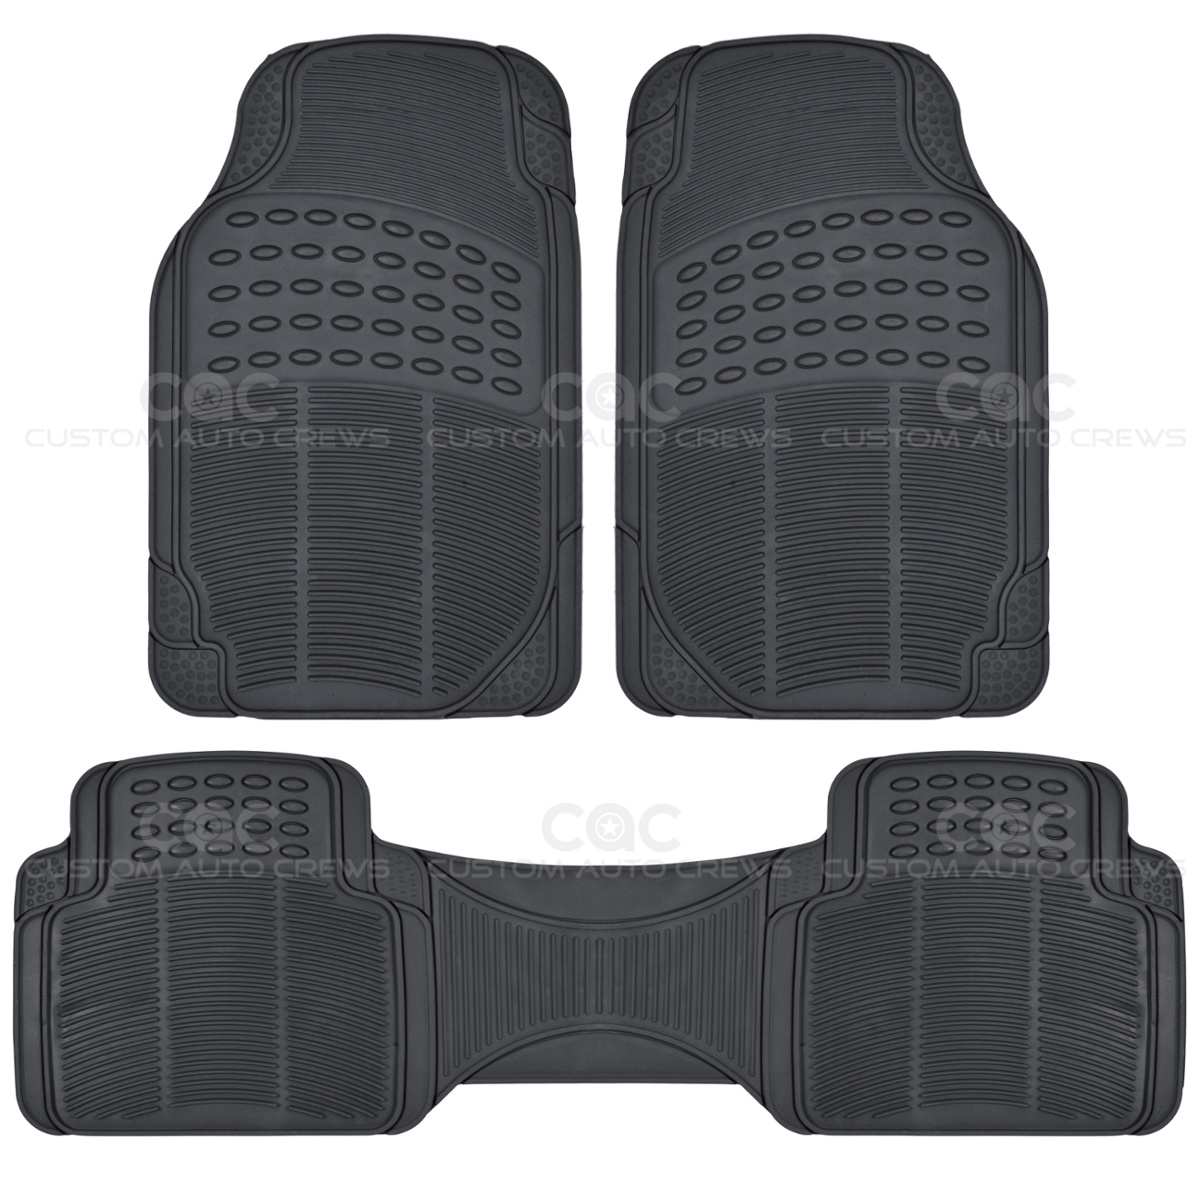 BDK Seat Covers Amp Mats Gray PU Leather Seat Covers Amp Black